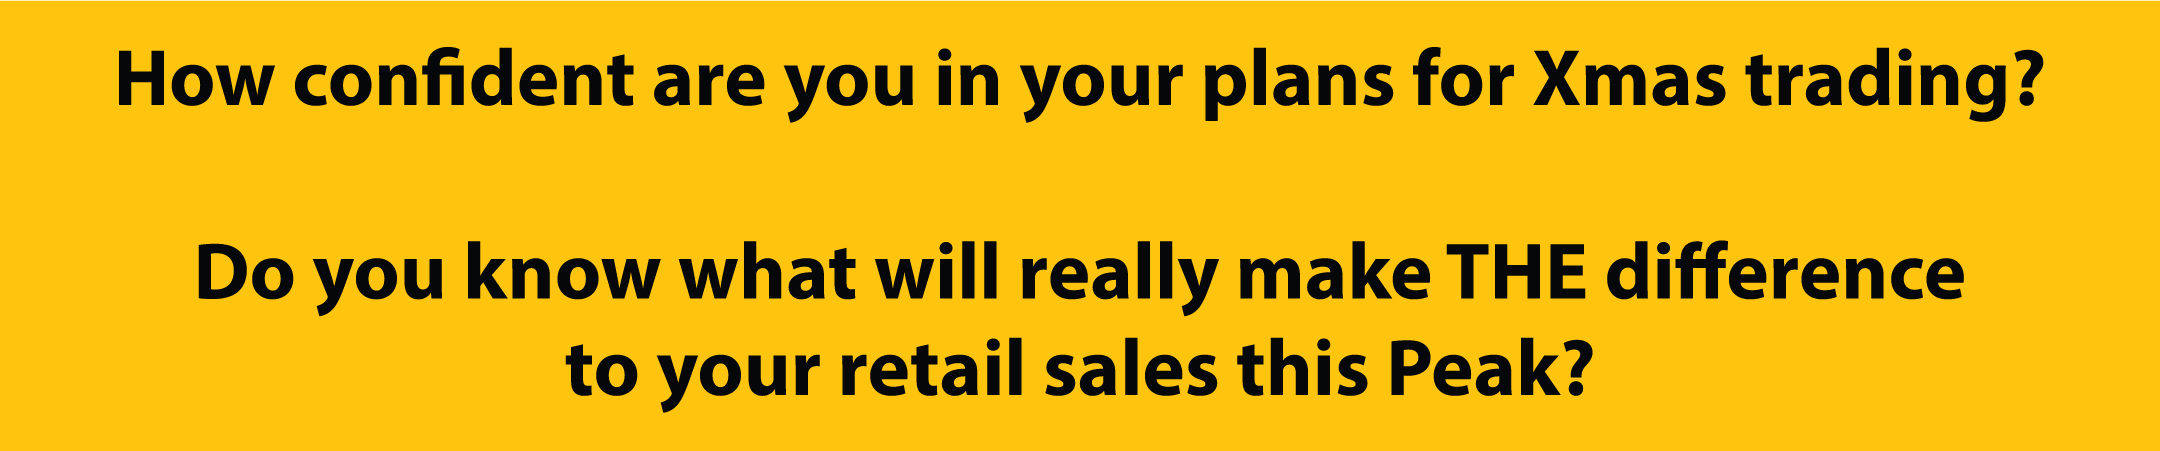 Do you know what will really make THE difference to your retail sales this Peak?